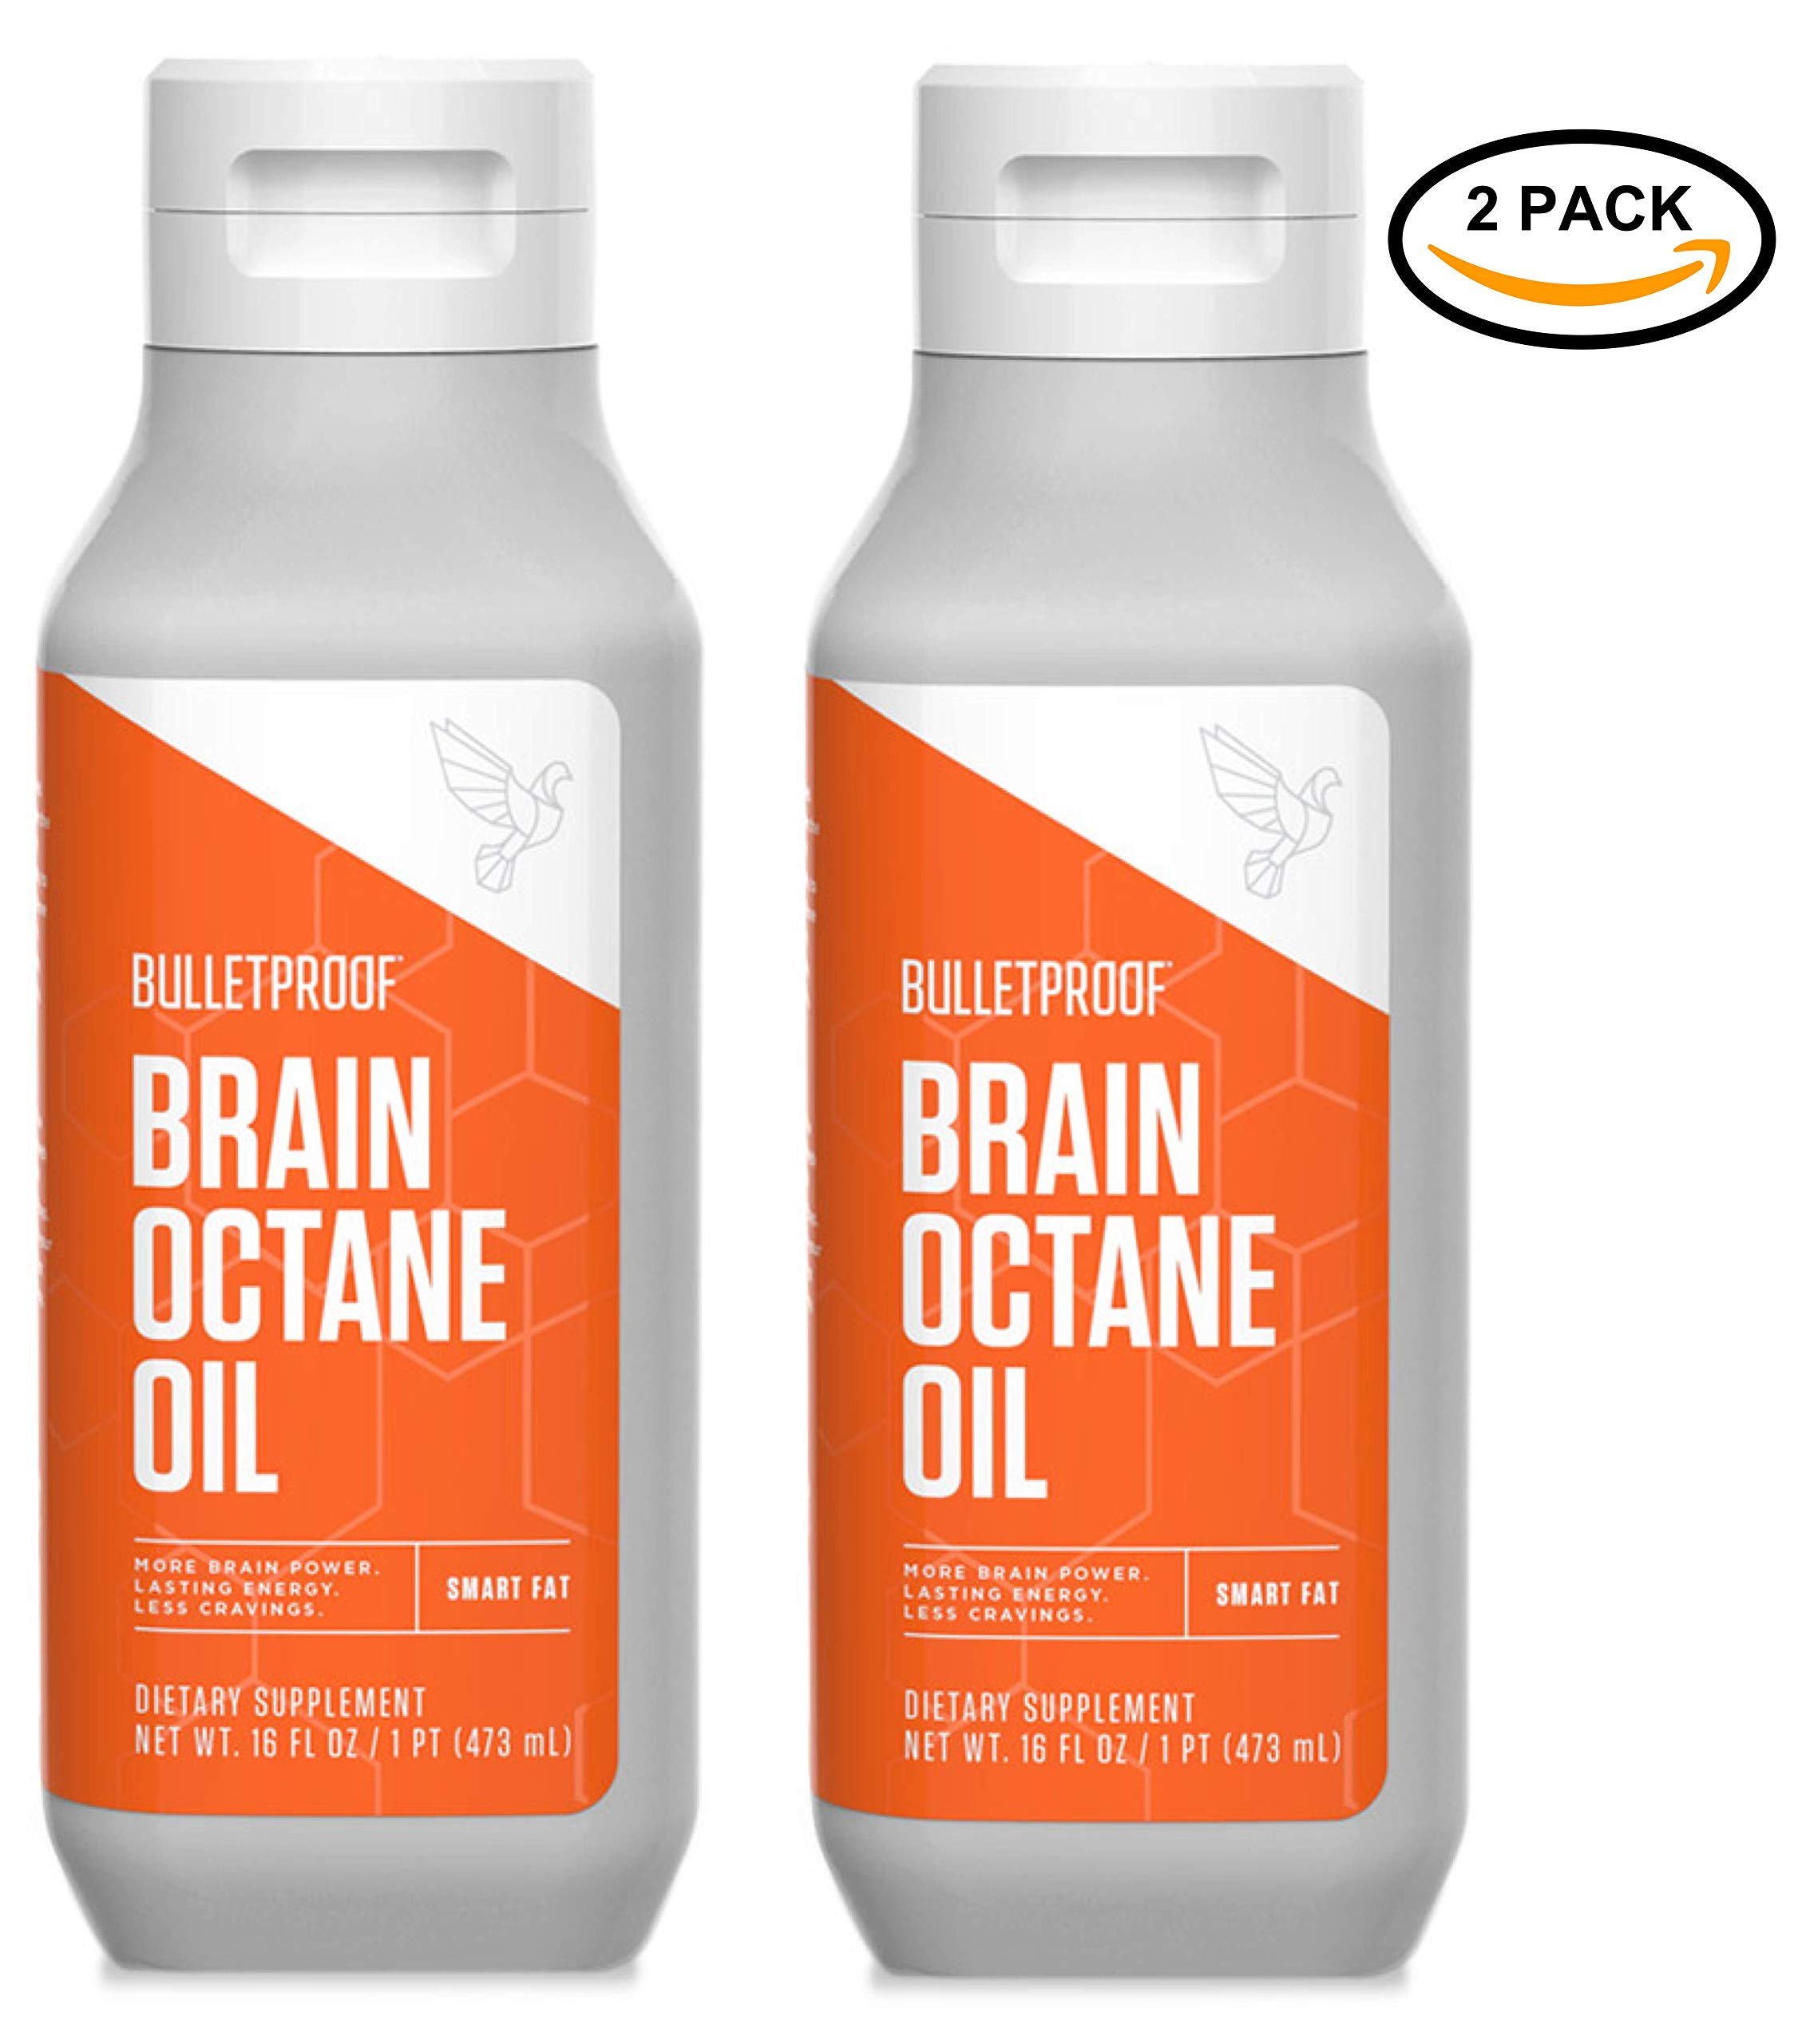 Bulletproof Brain Octane MCT Oil, Perfect for Keto and Paleo Diet, 100% Non-GMO Premium C8 Oil, Ketogenic Friendly, Responsibly Sourced from Coconuts Only, Made in the USA (2-Pack of 16oz)